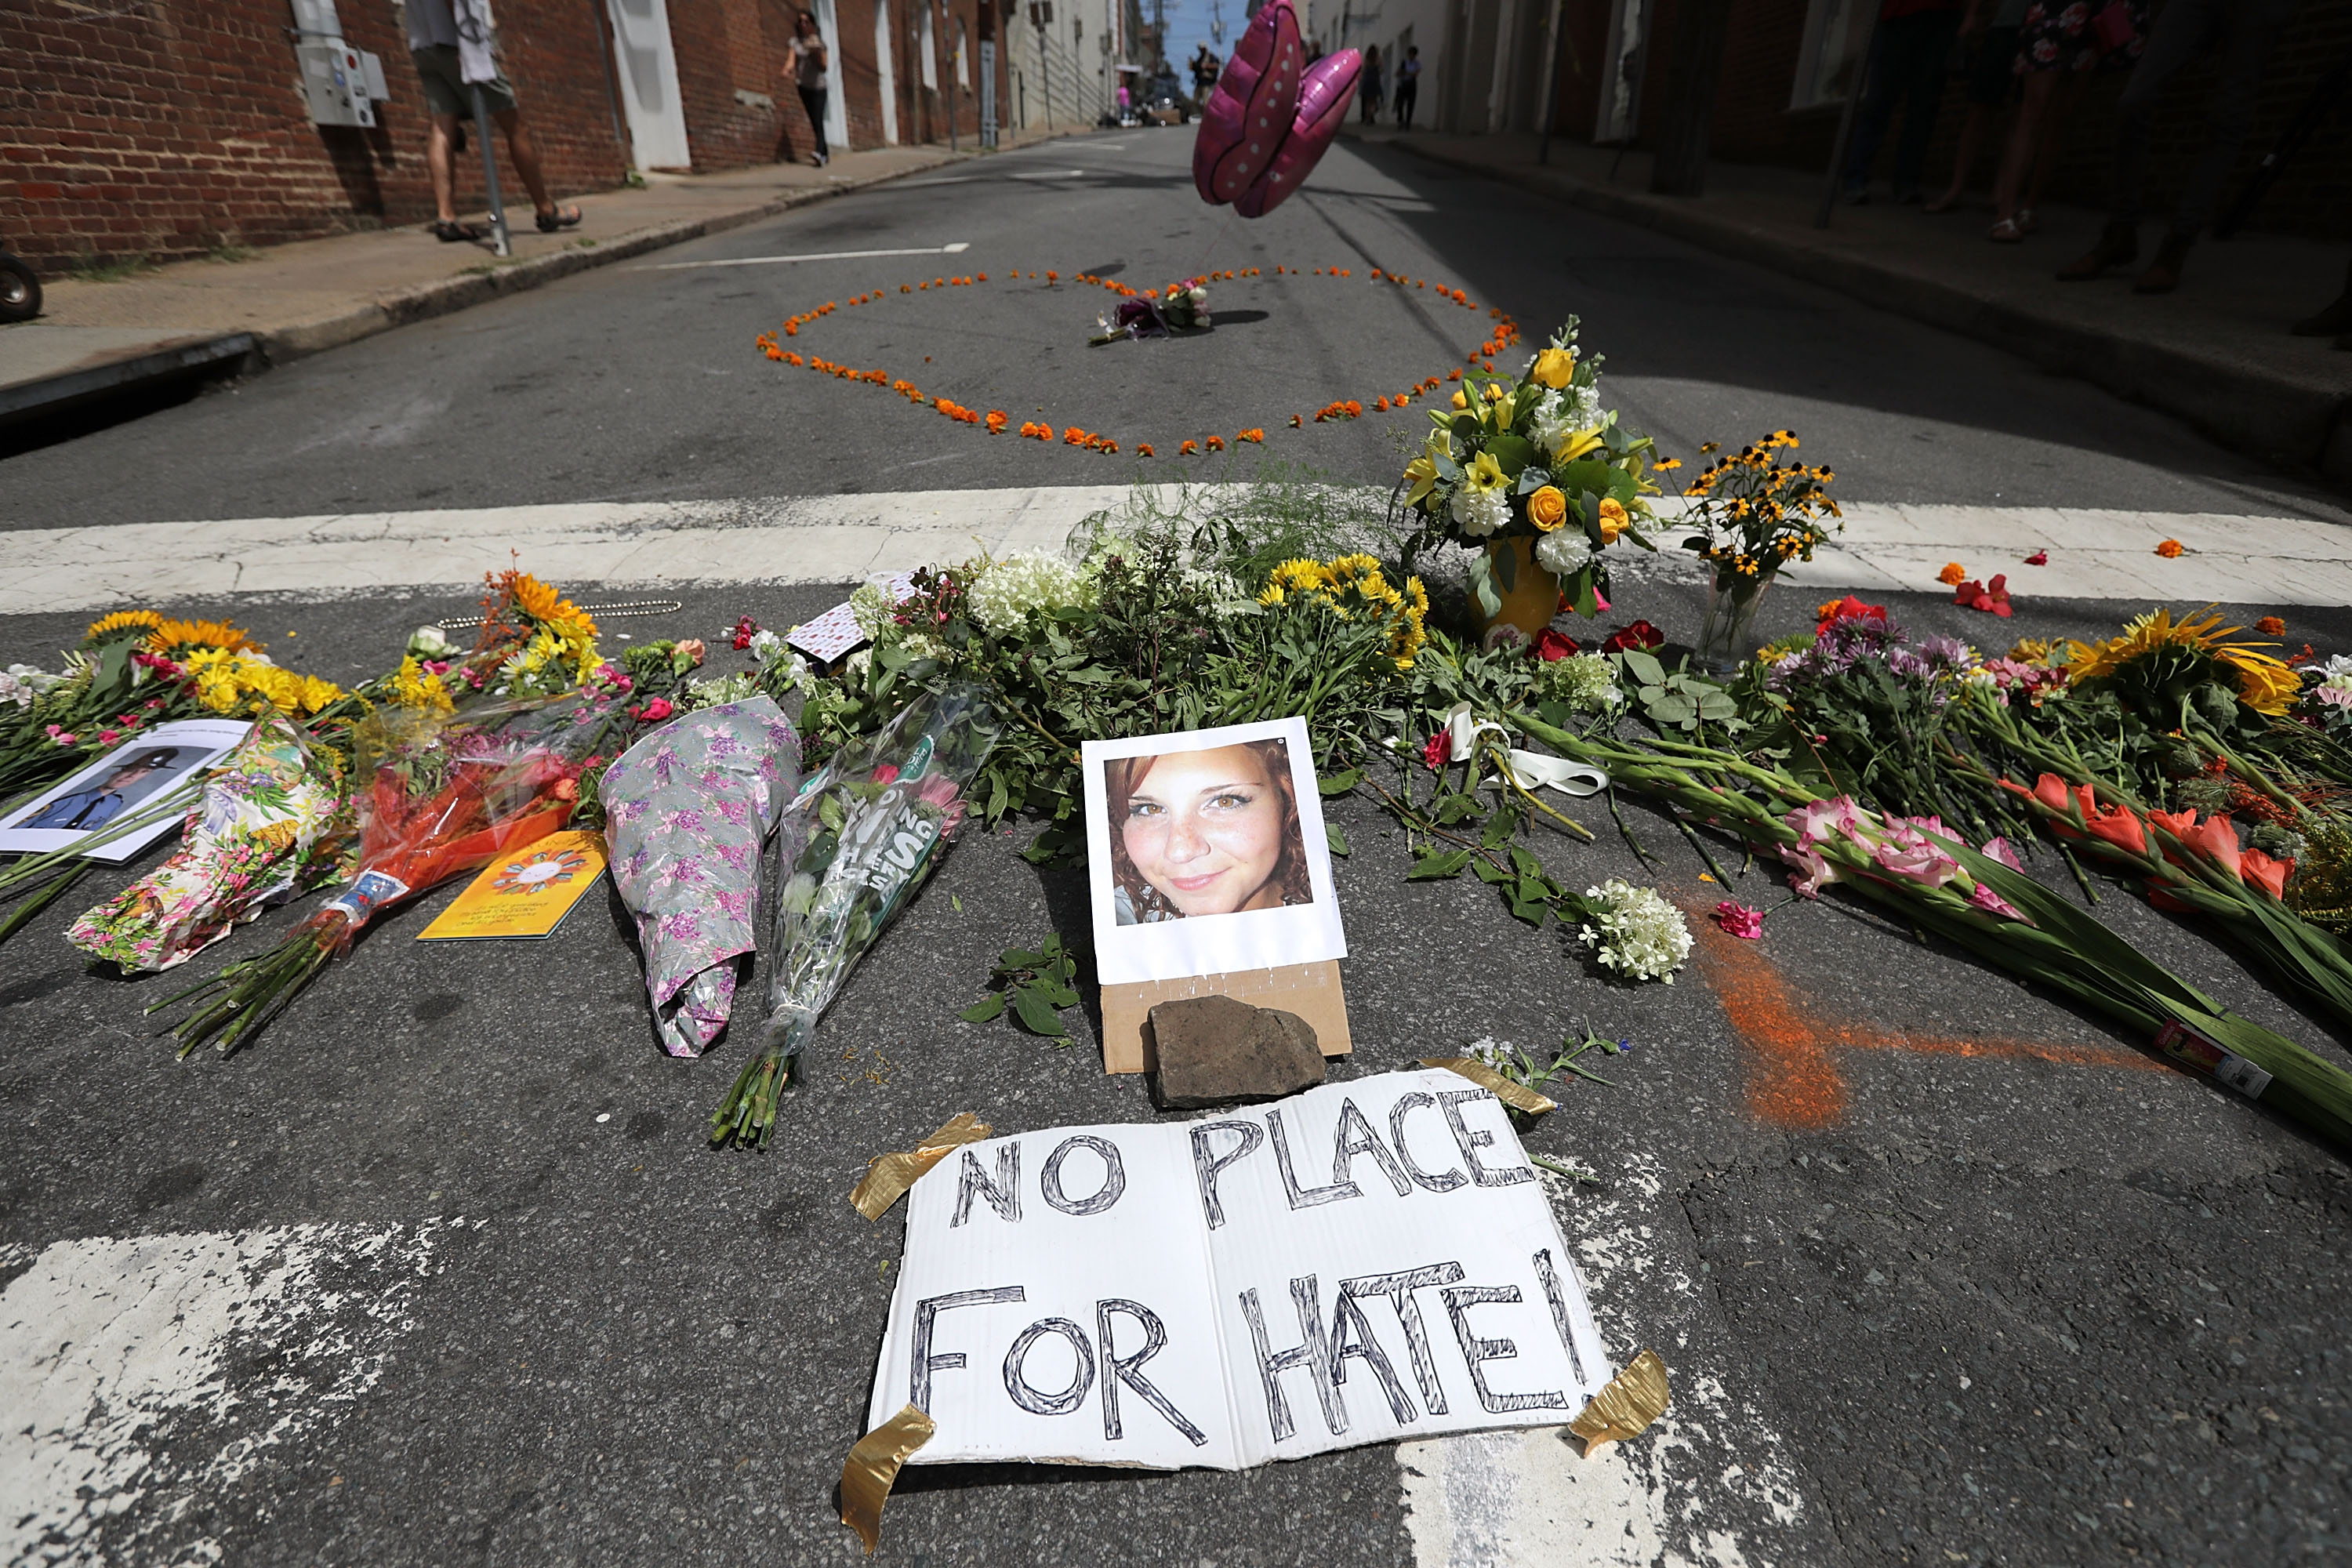 Flowers surround a photo of 32-year-old Heather Heyer, who was killed when a car plowed into a crowd of people protesting against the white supremacist Unite the Right rally, August 13, 2017 in Charlottesville, Va.